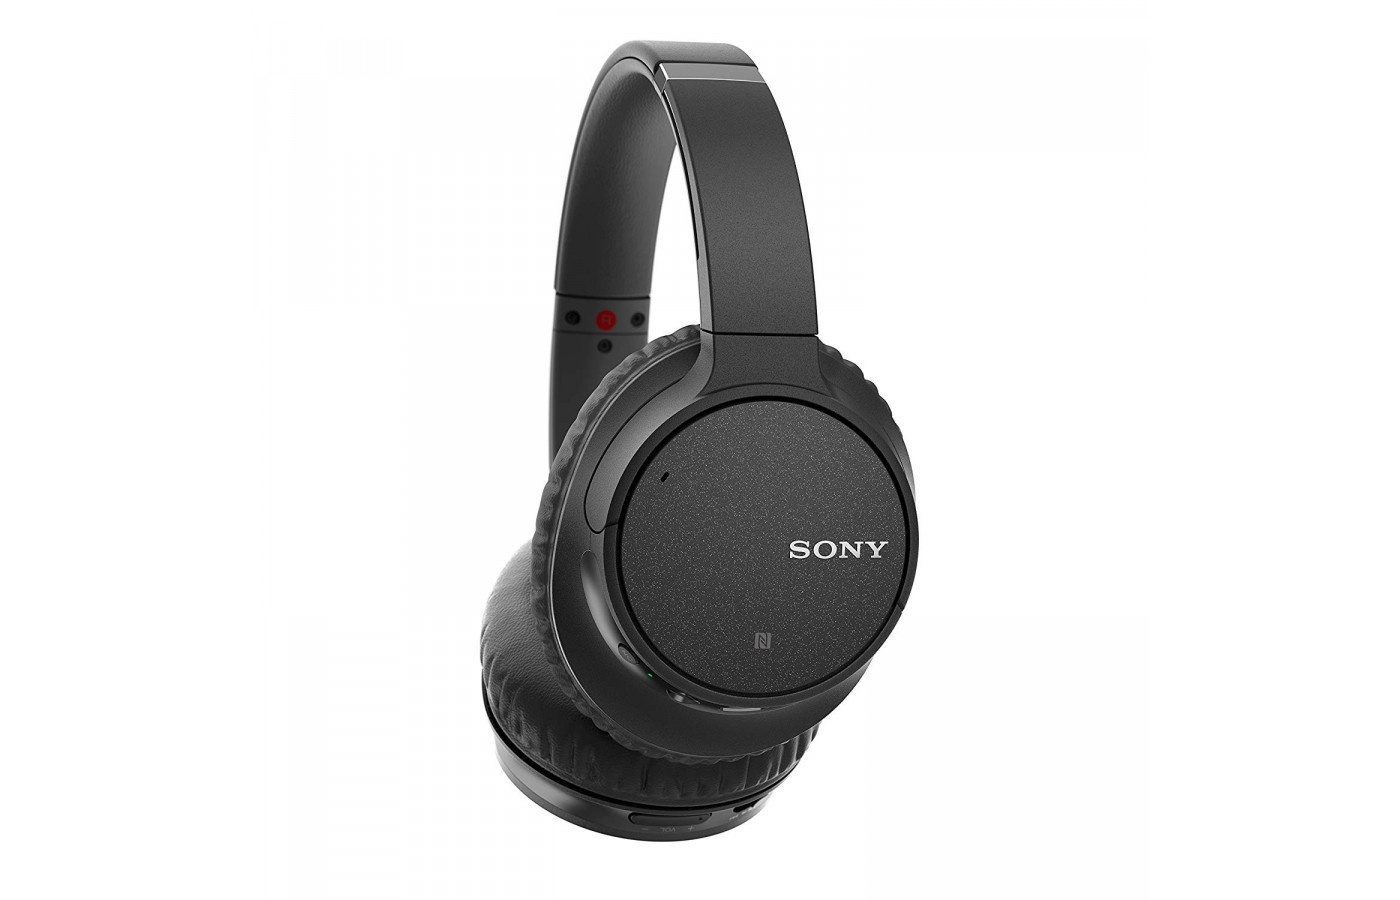 The Sony WH-CH700N offers an adjustable headband for a better fit.